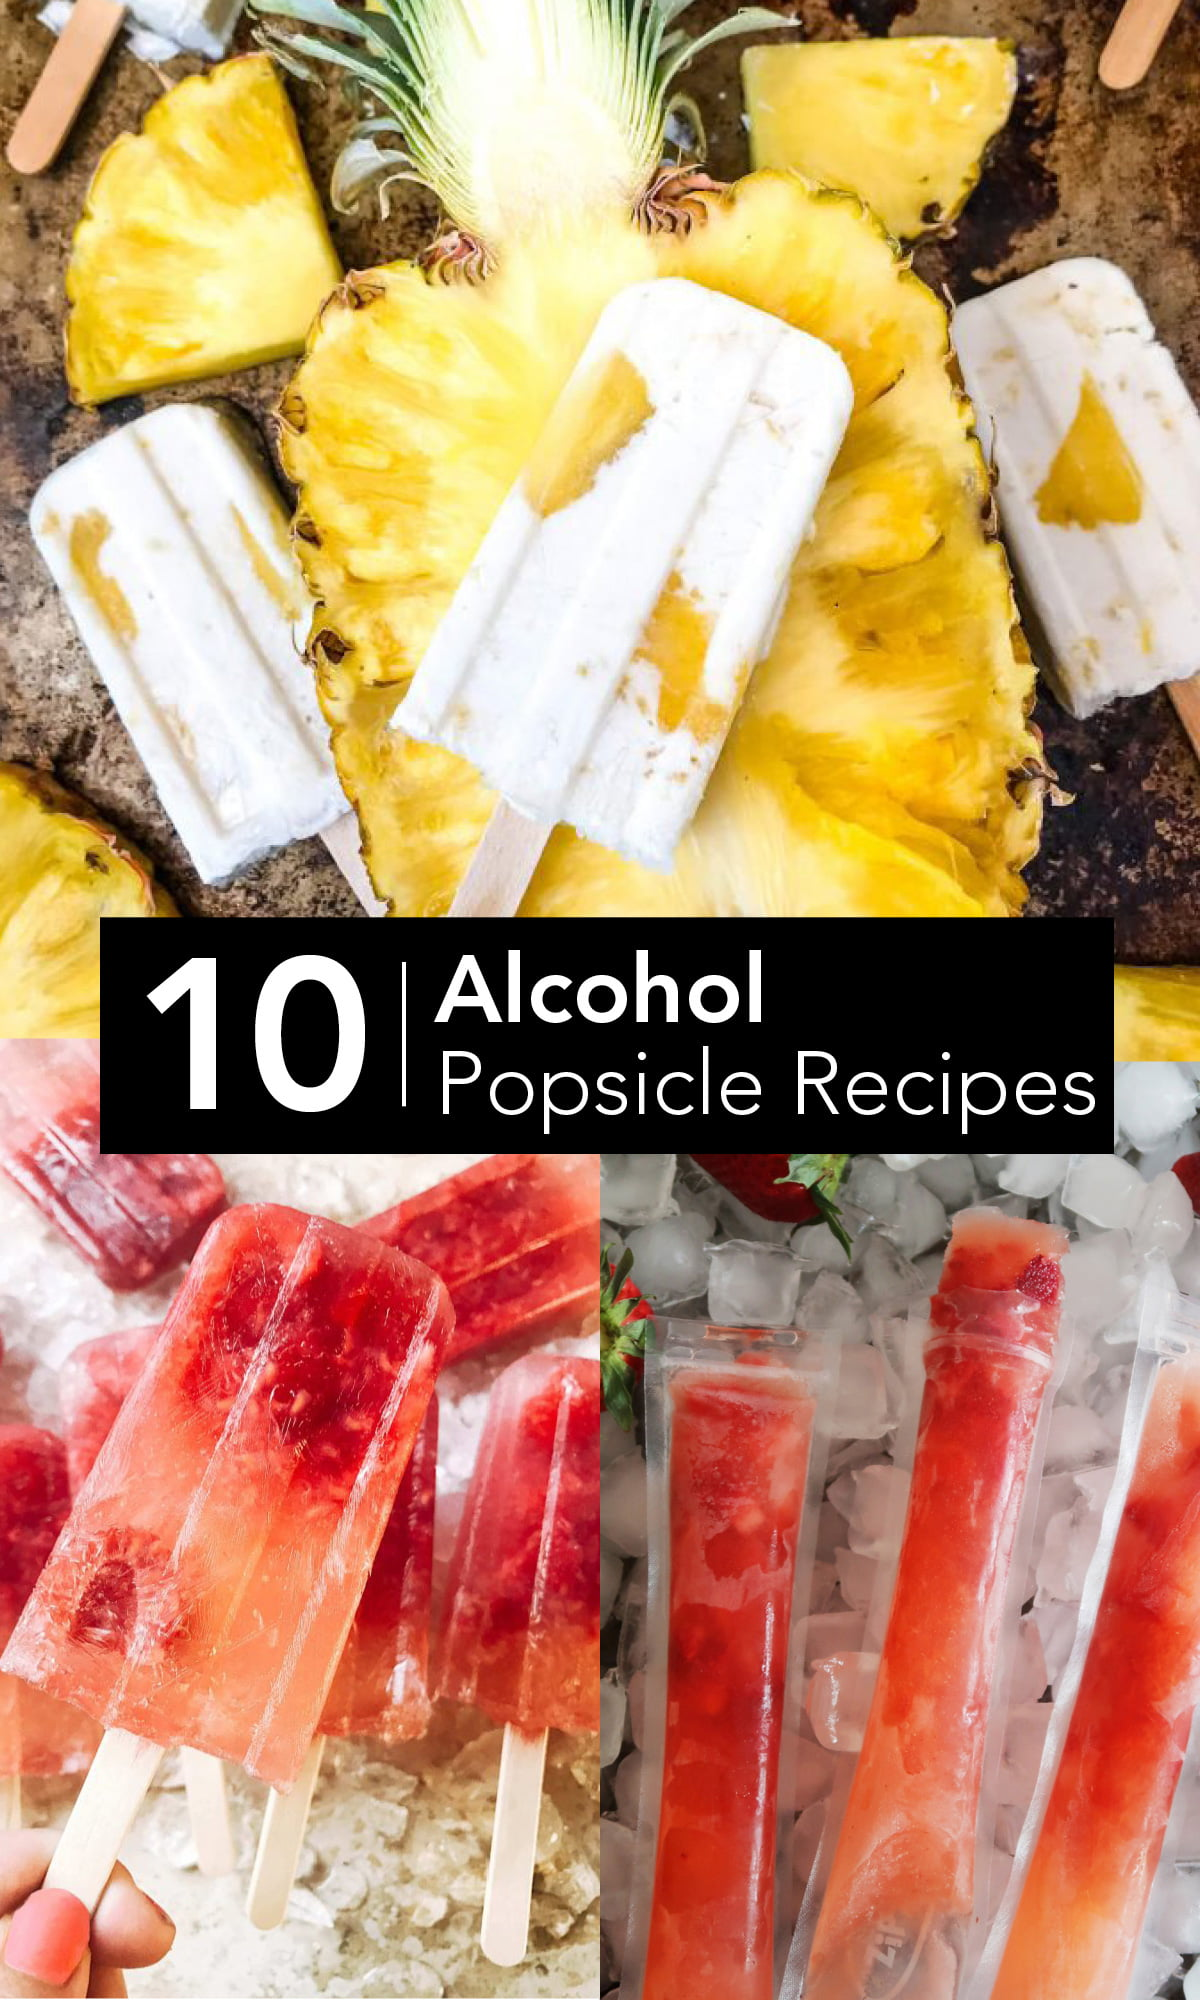 10 Alcohol Popsicle Recipes